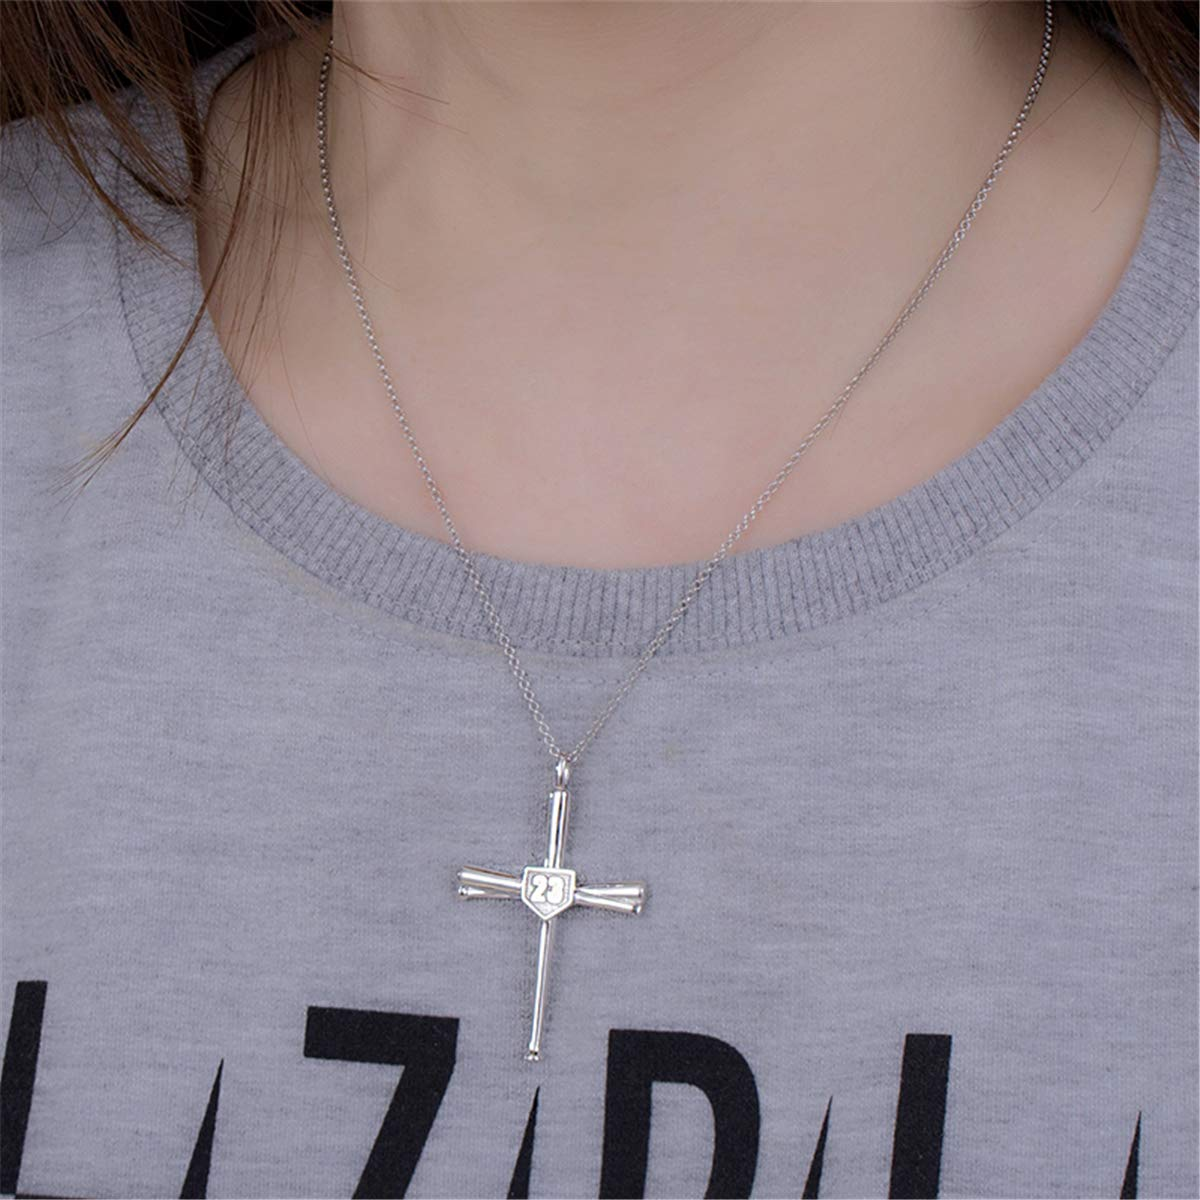 AILIN Cross Necklace Baseball Bats Athletes Cross Pendant Sports Number Or Initial Necklaces Gifts for Men Women Teen Boys Girls